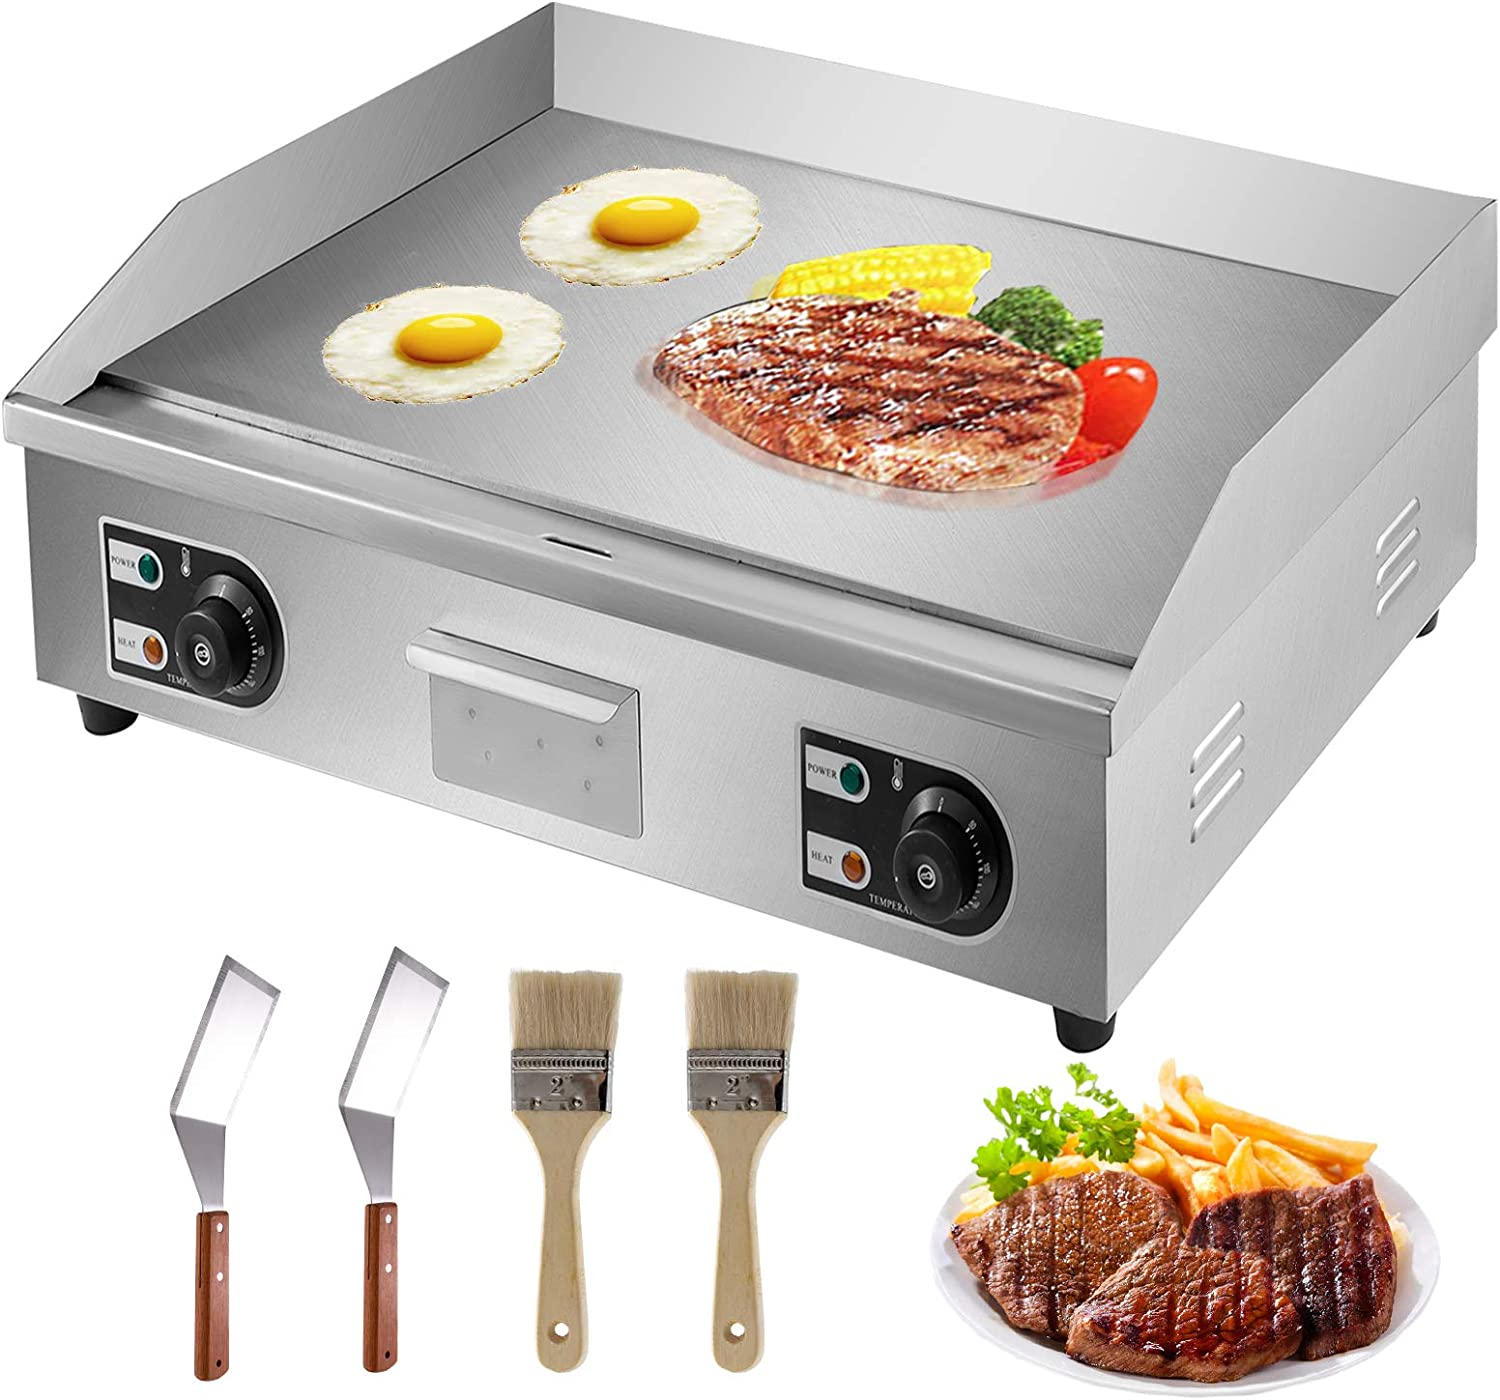 """VBENLEM 30"""" Electric Countertop Flat Top Griddle 110V 4400W Non-Stick Commercial Restaurant Teppanyaki Grill Stainless Steel Adjustable Temperature Control 122°F-572°F"""